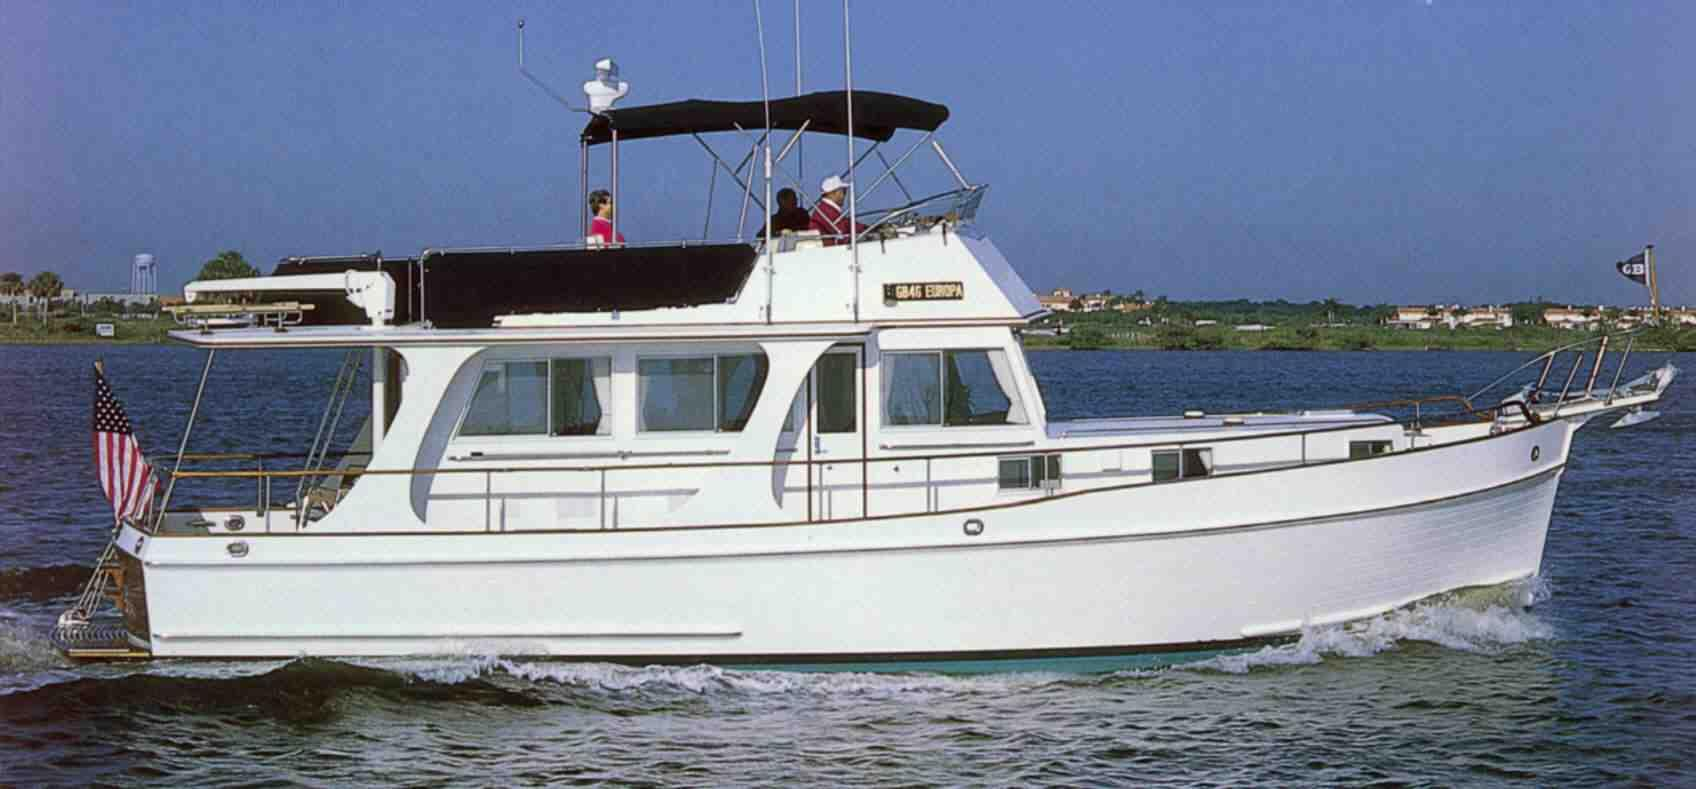 1997 Grand Banks 46 Europa Power Boat For Sale Www